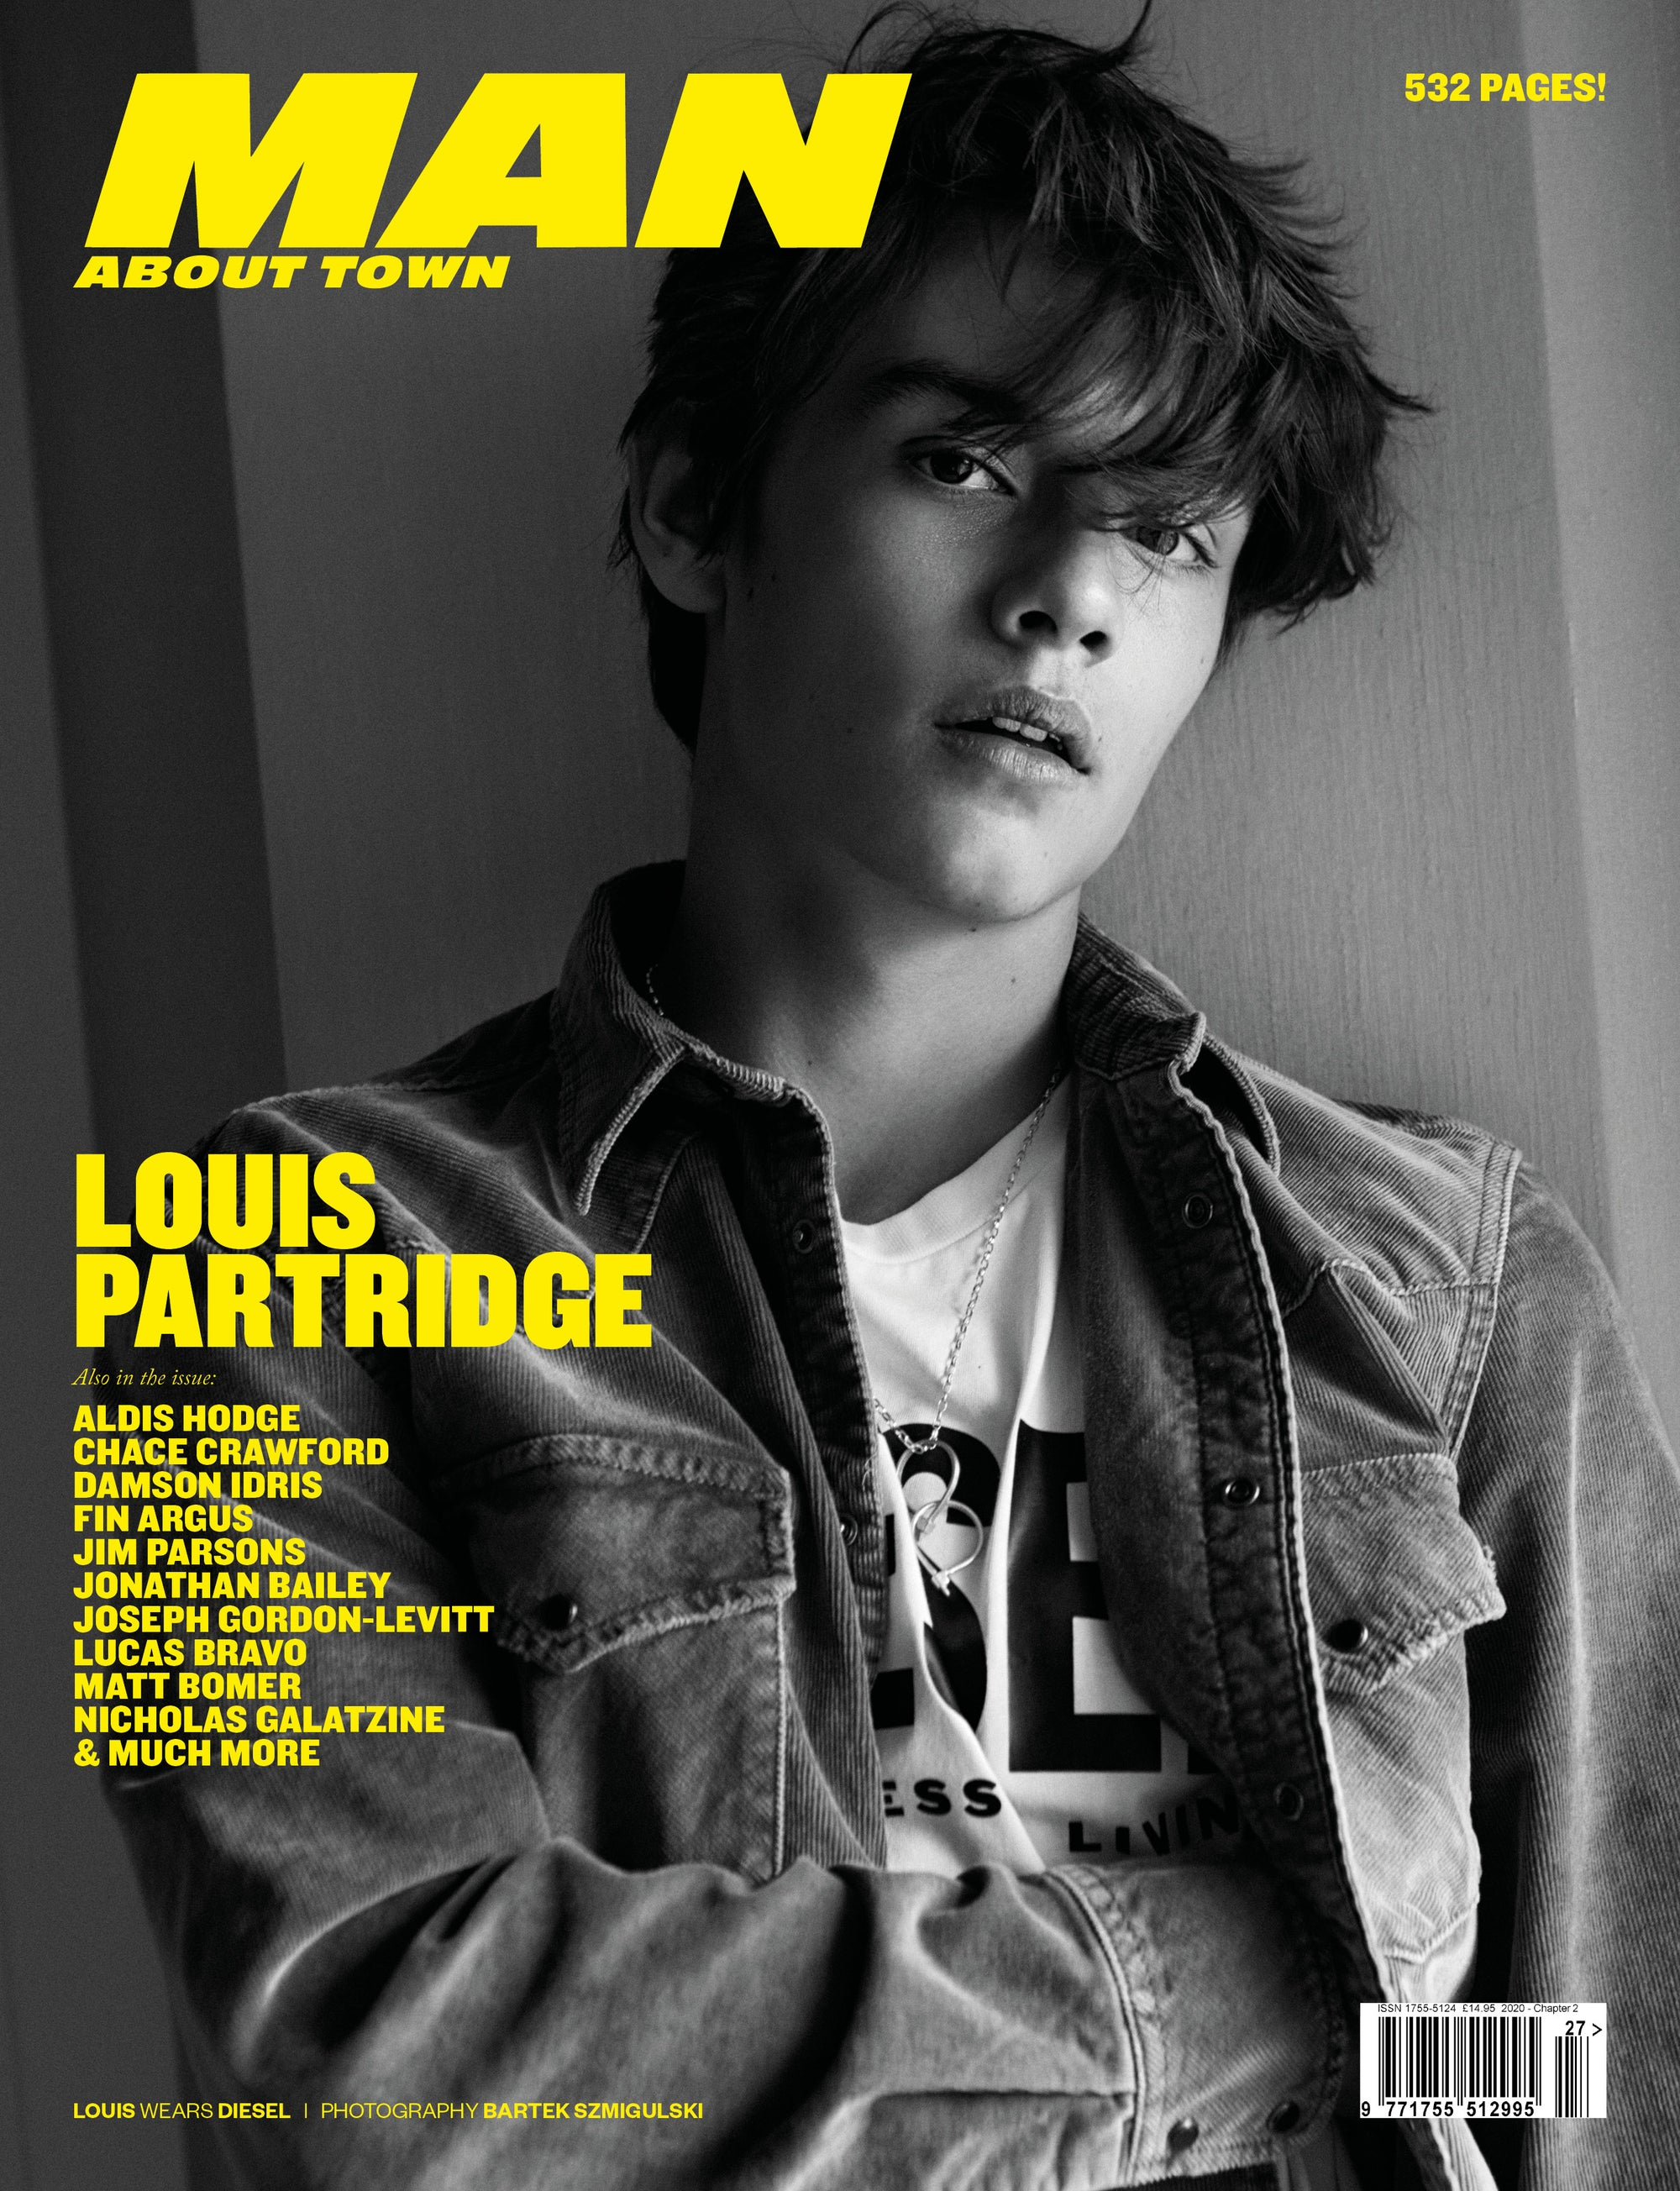 LOUIS PARTRIDGE covers Man About Town 2020, Chapter II